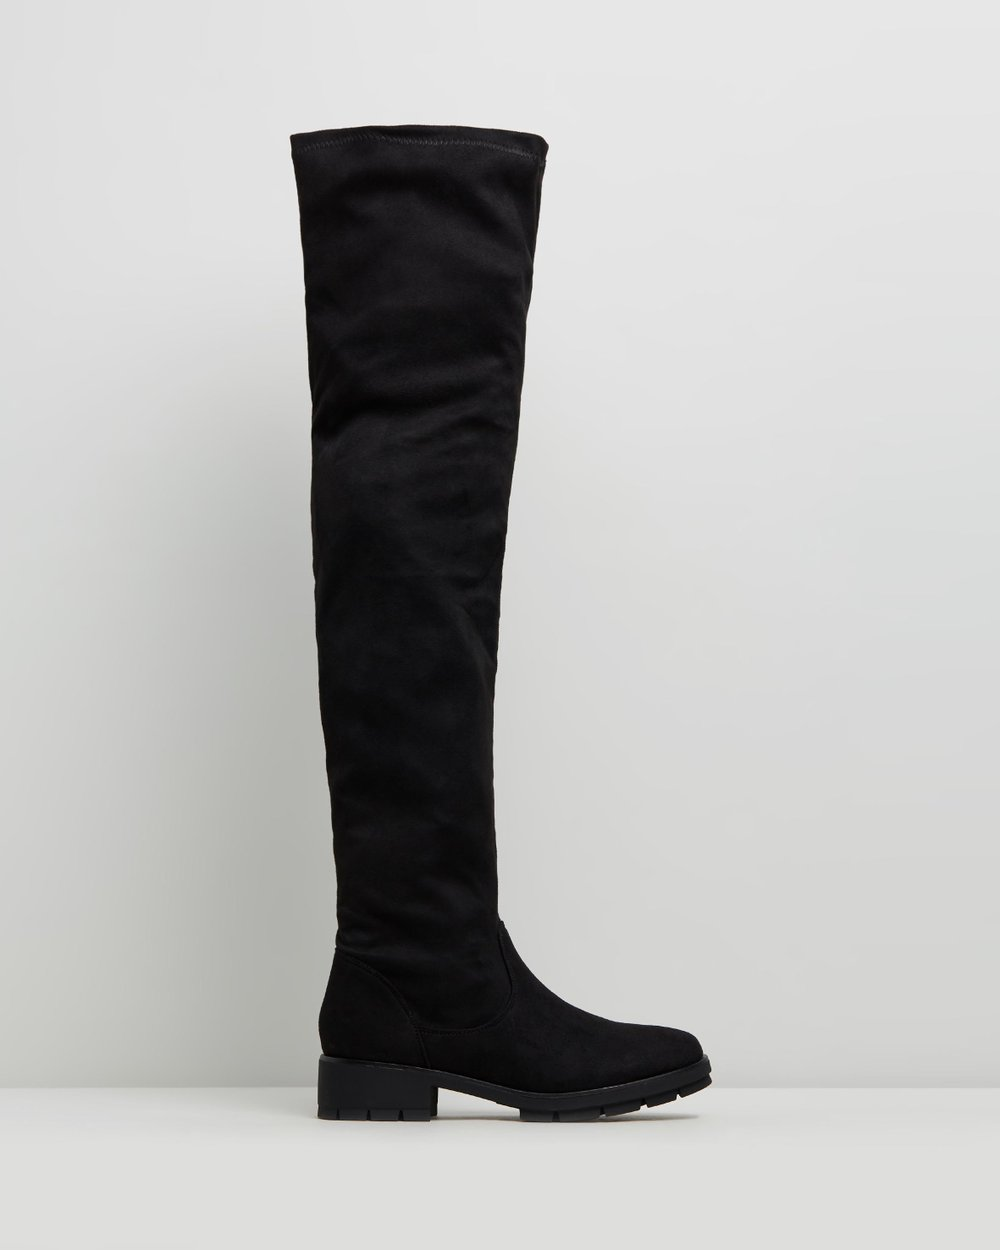 d665354ce Cleated Sole Over-The-Knee Boots by Missguided Online | THE ICONIC |  Australia